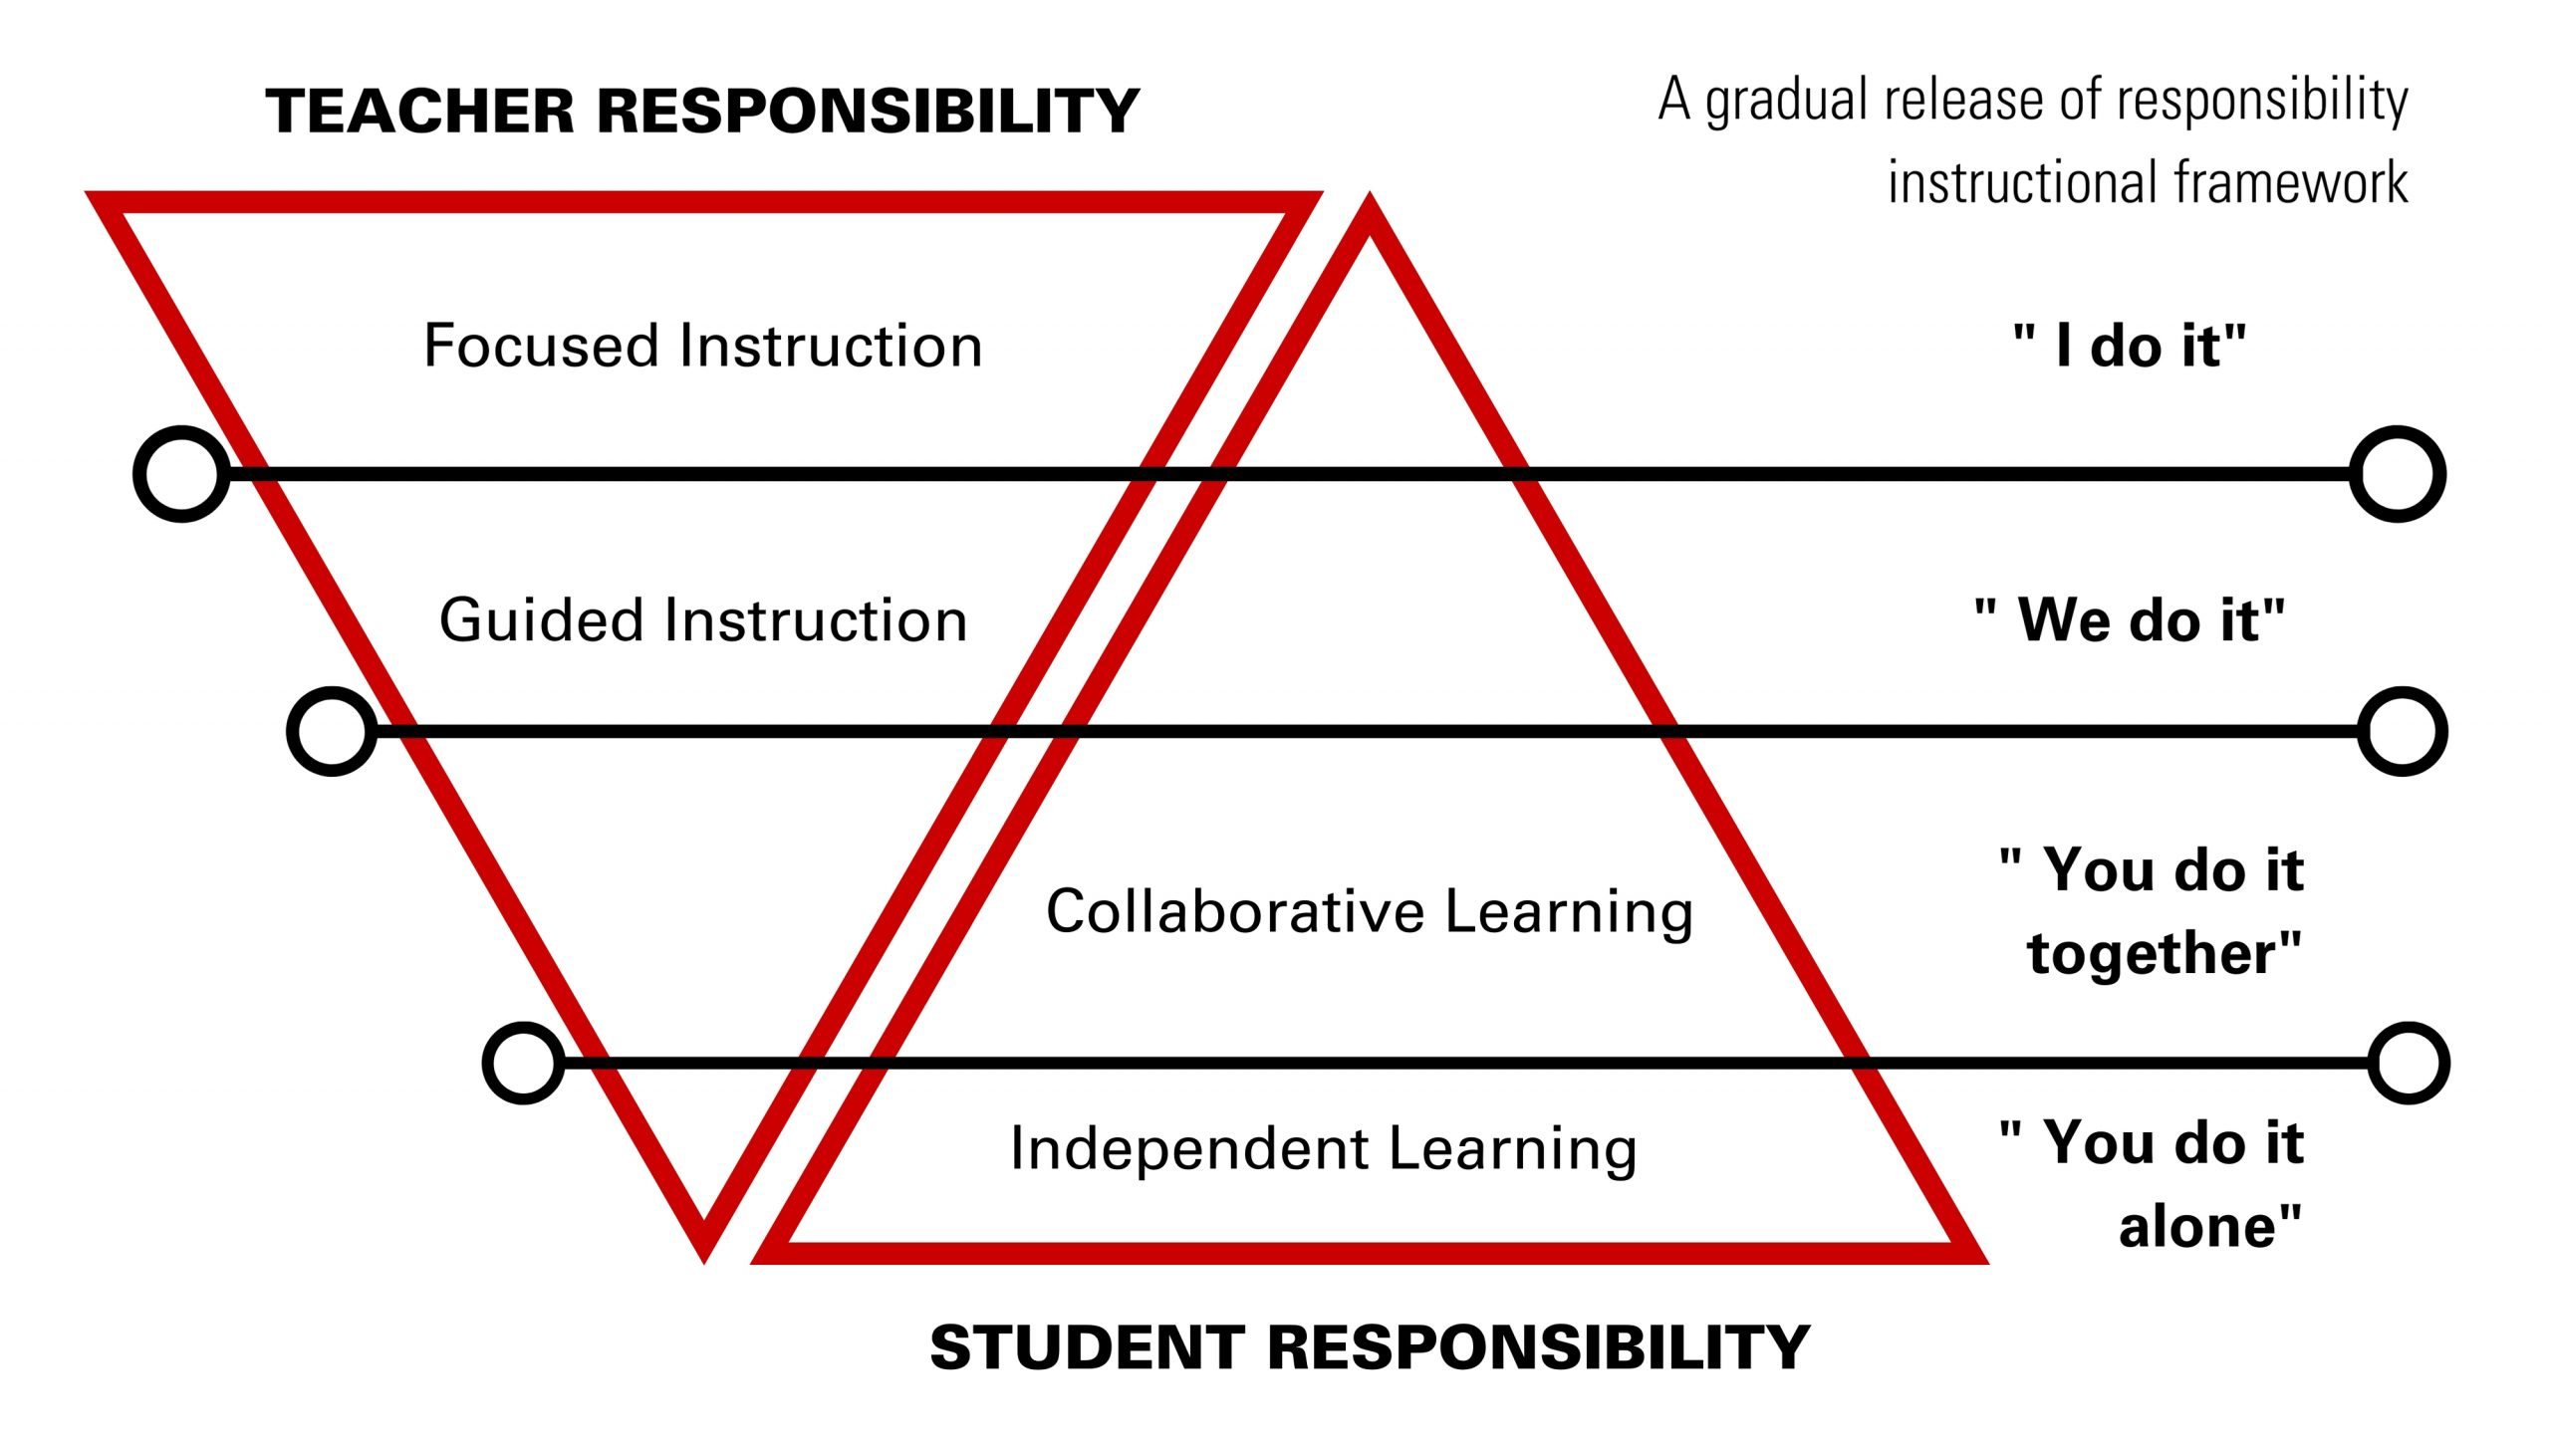 gradual release of responsibility instructional framework